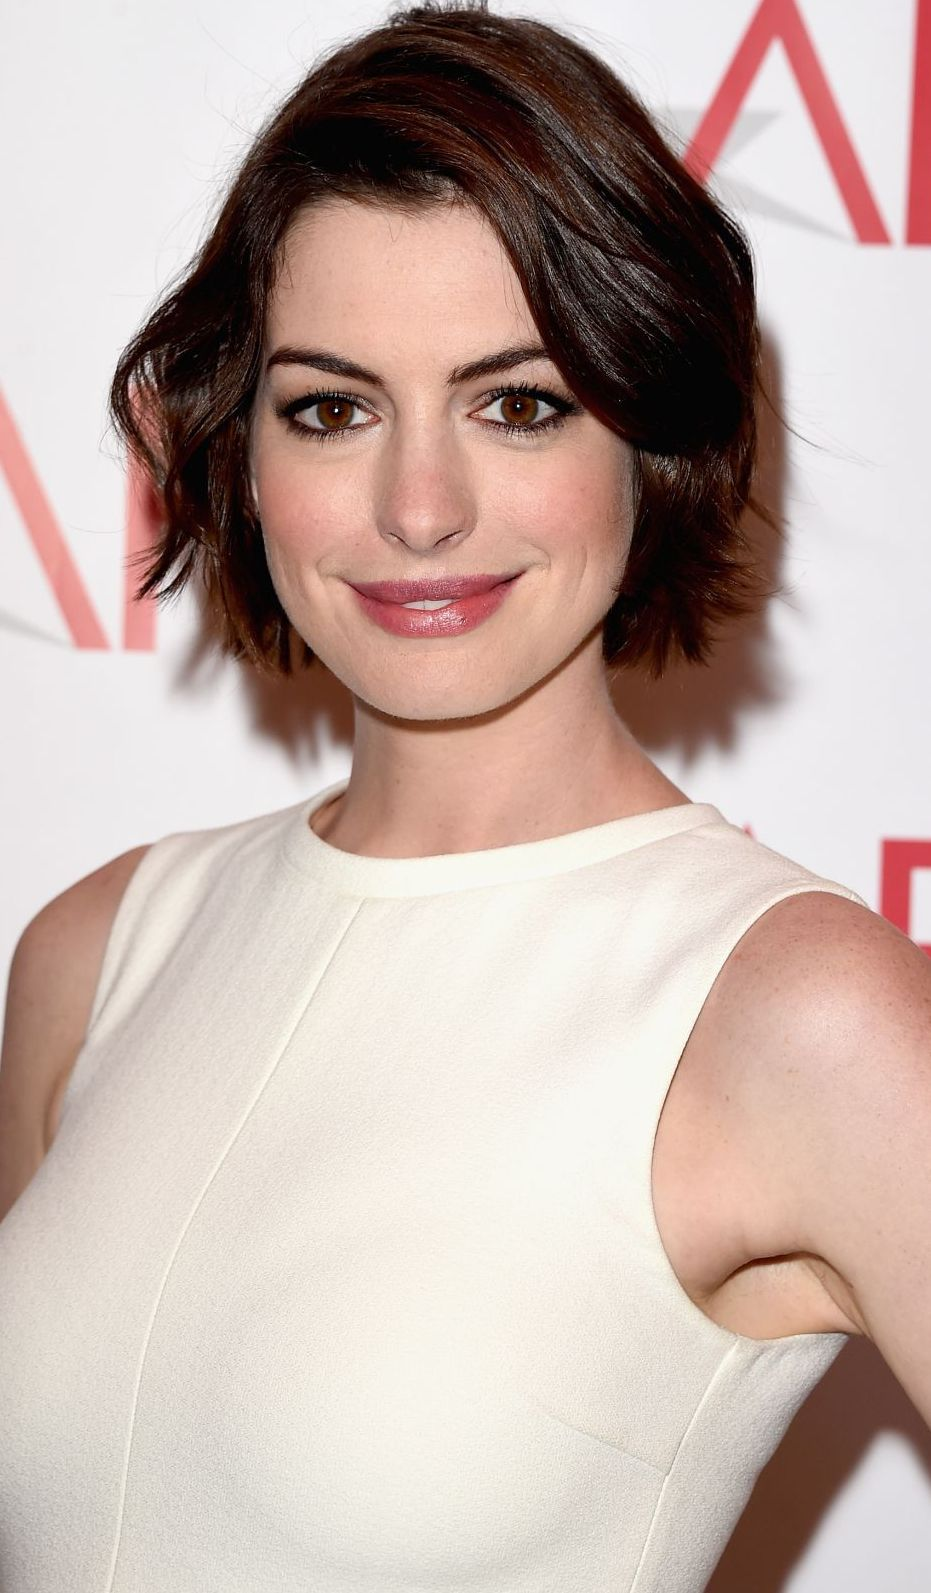 Watch Anne Hathaway born November 12, 1982 (age 35) video